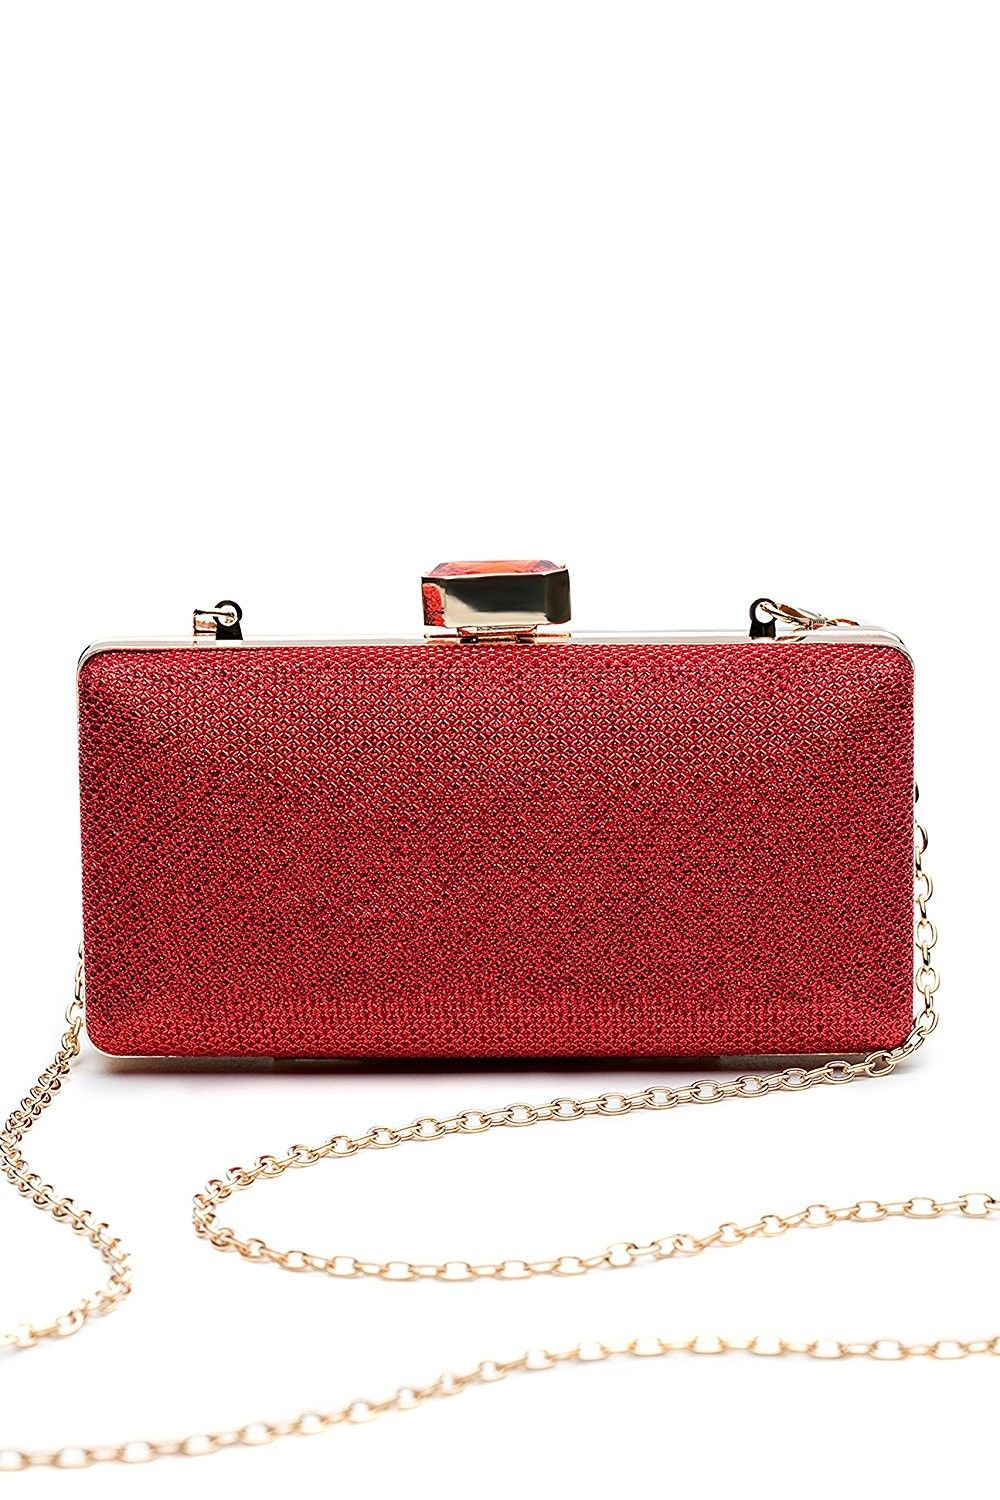 Women Clutch Purse Wallet Hard Case Glitter Evening Bag Handbag With Chain Strap Red Ct12jrz5gof S Bags Clutches Womensbags